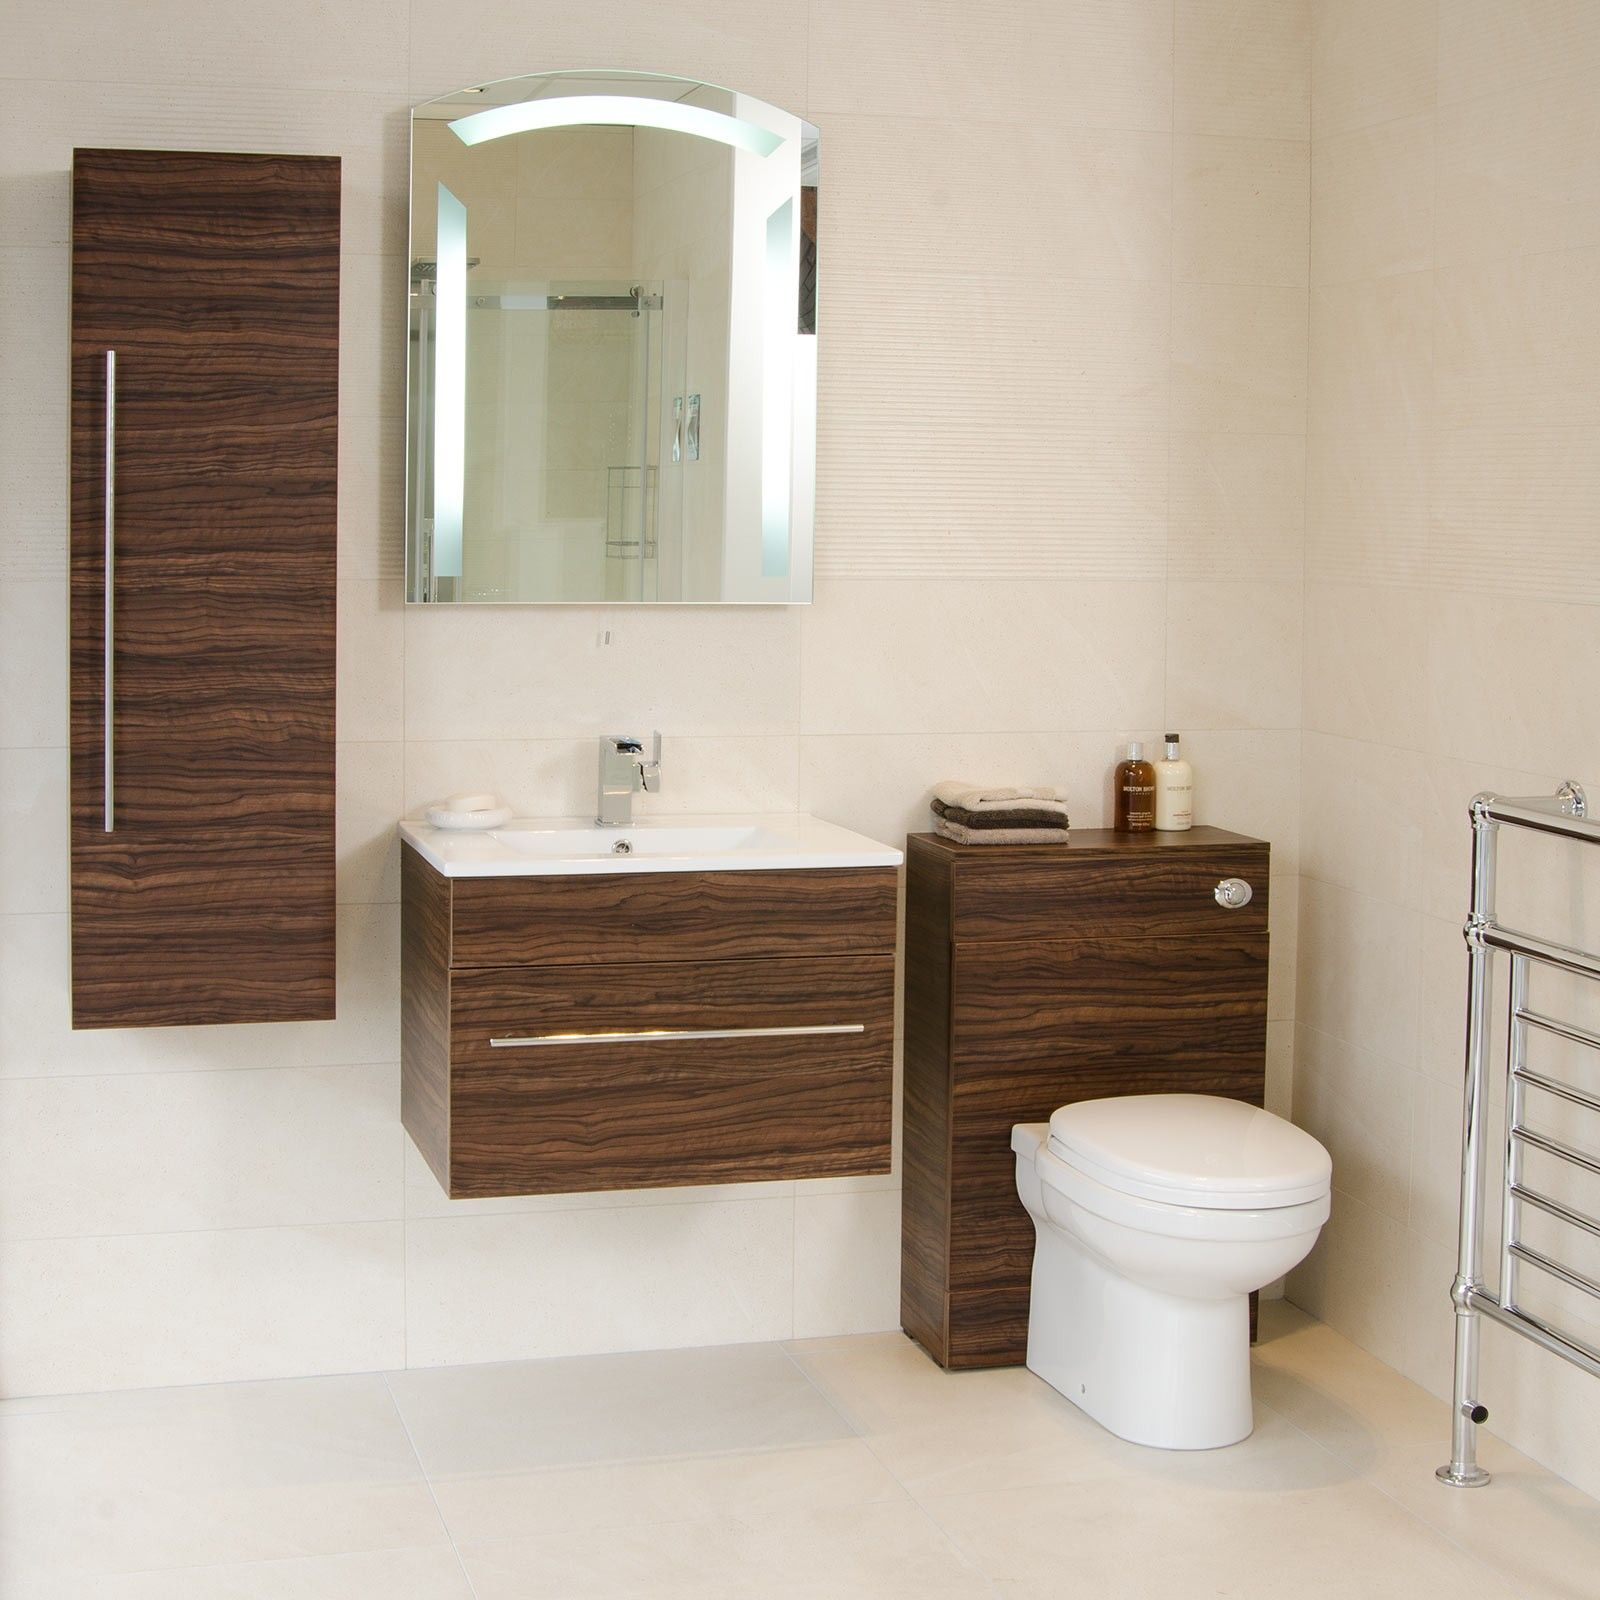 Brera beige wall tile bathroom ideas pinterest beige for Beige tile bathroom ideas